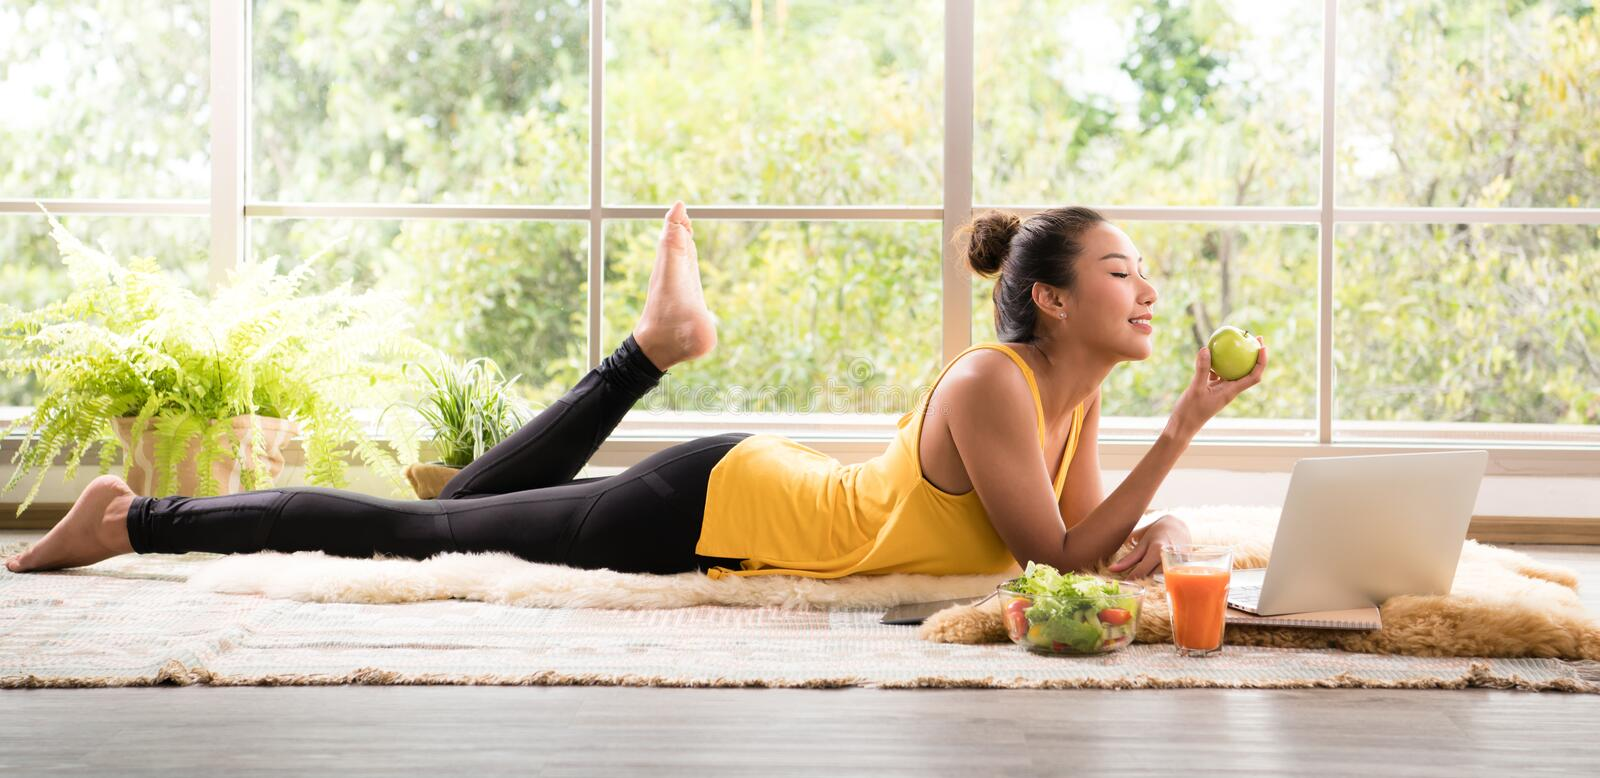 Healthy Asian woman lying on the floor eating salad looking relaxed and comfortable stock photos